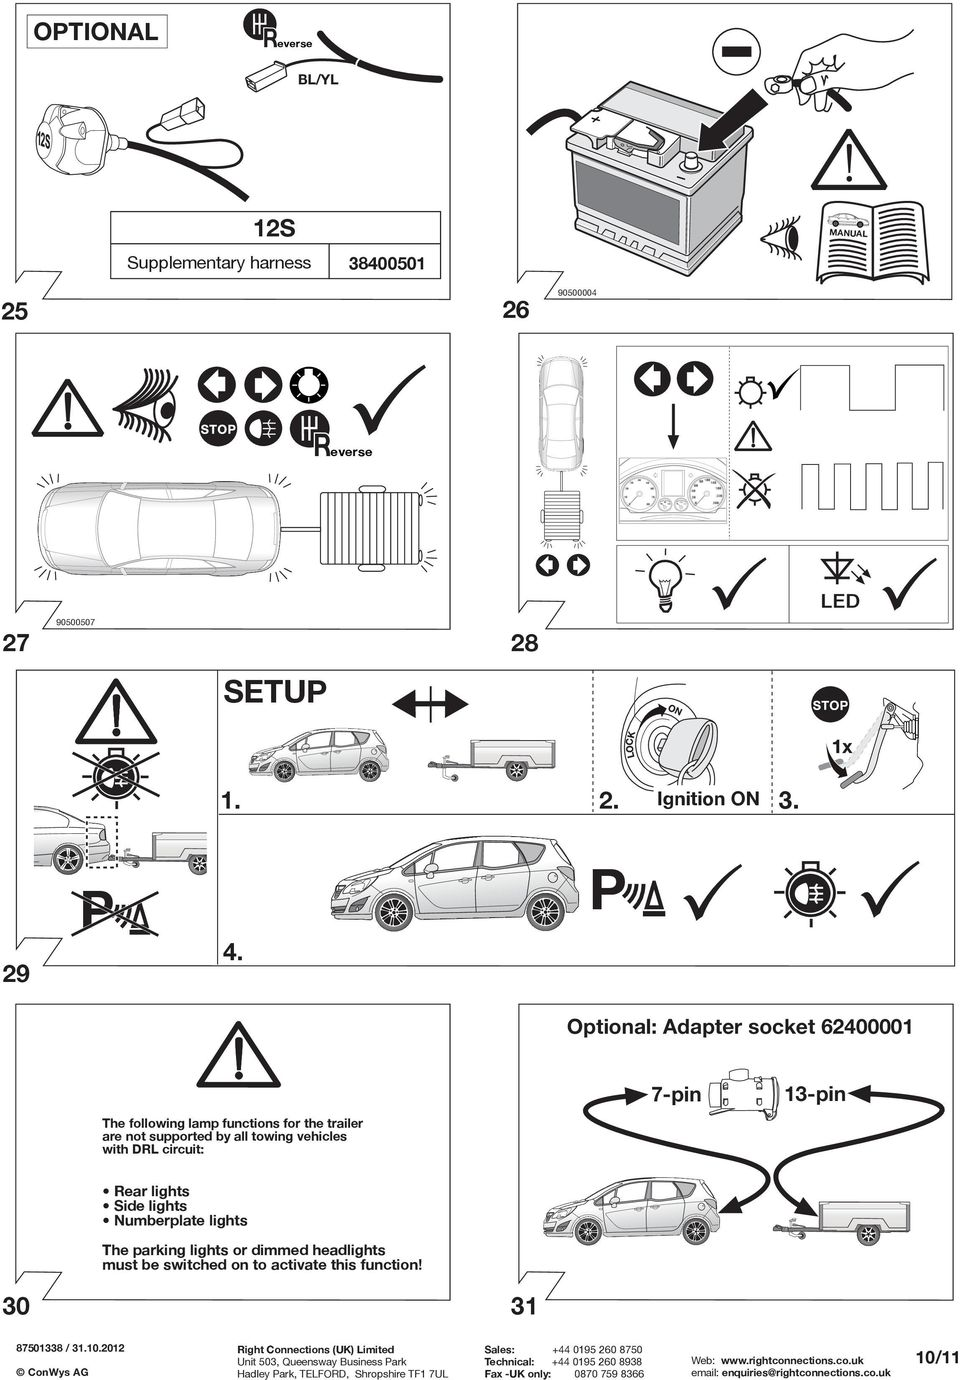 page_10 fitting instructions part no rc vauxhall meriva b 06 10 important